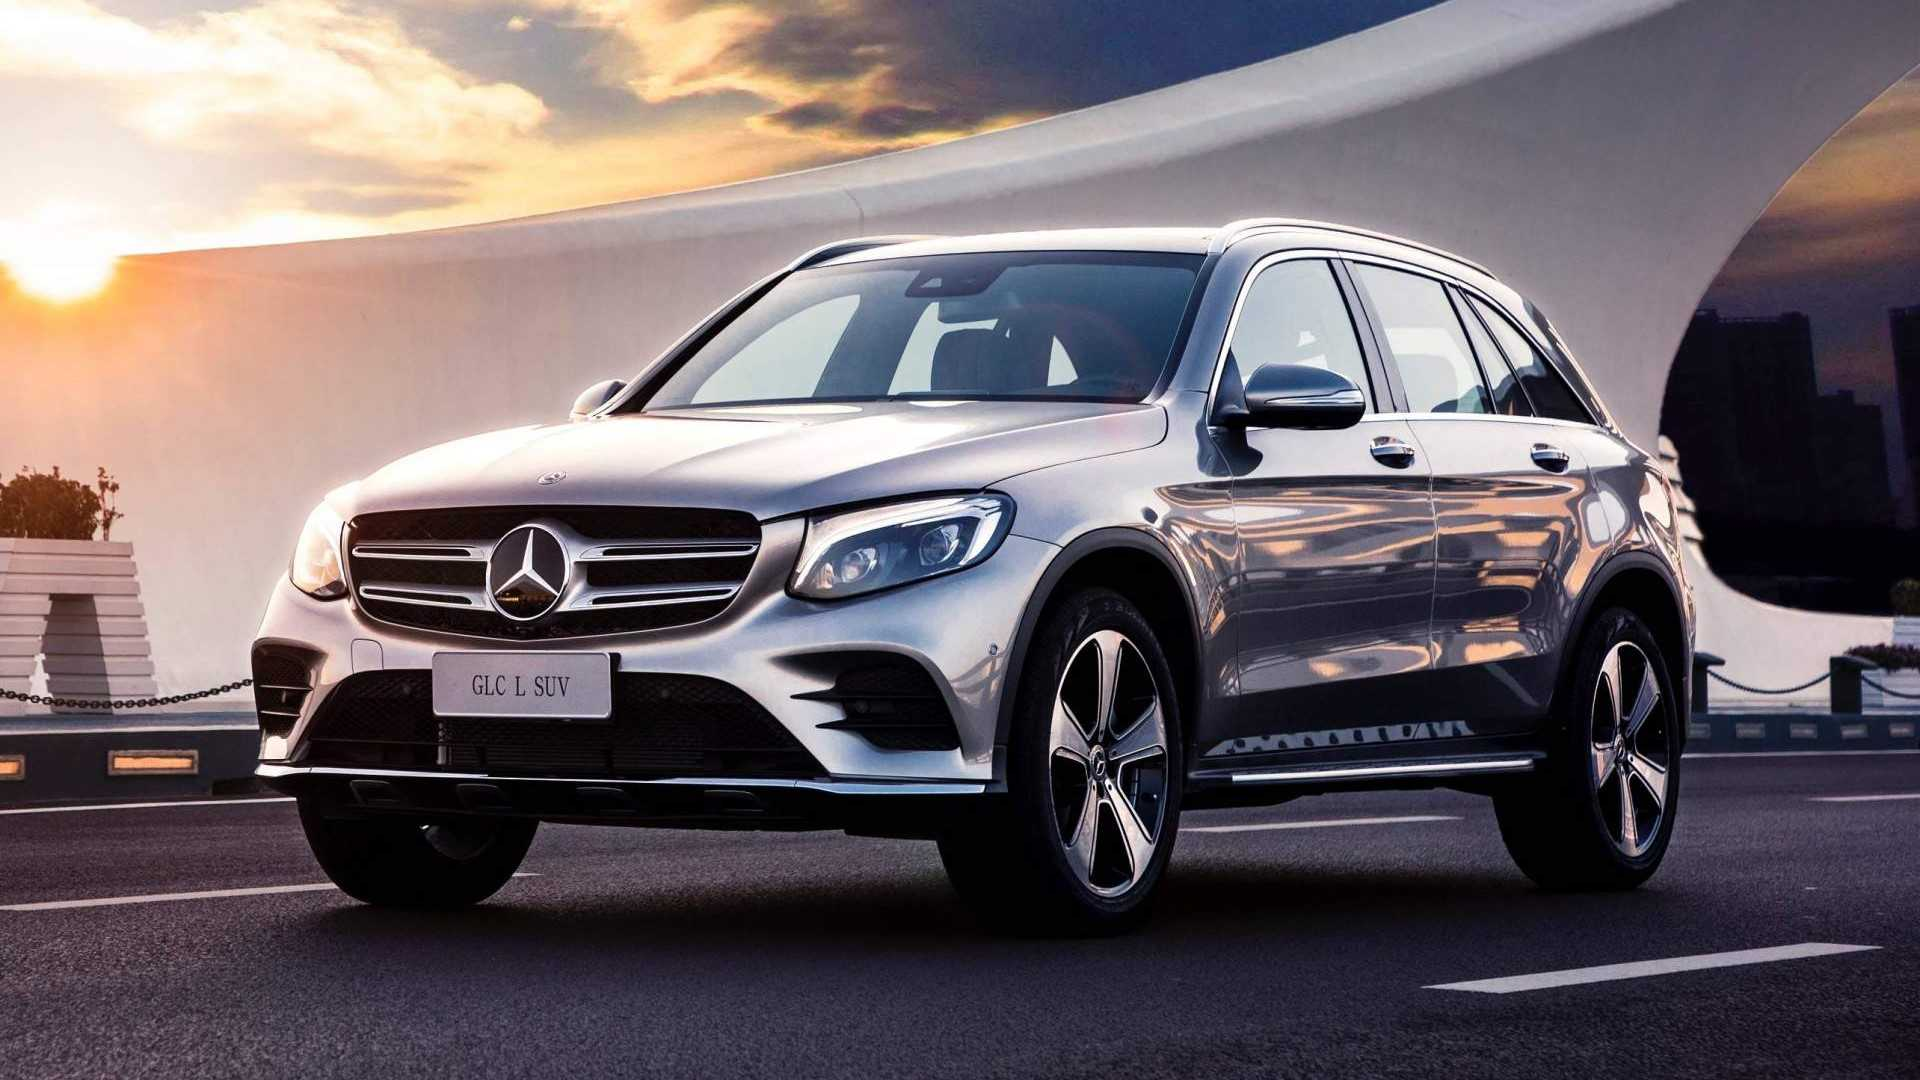 Mercedes Benz Launches Long Wheelbase GLC L In China